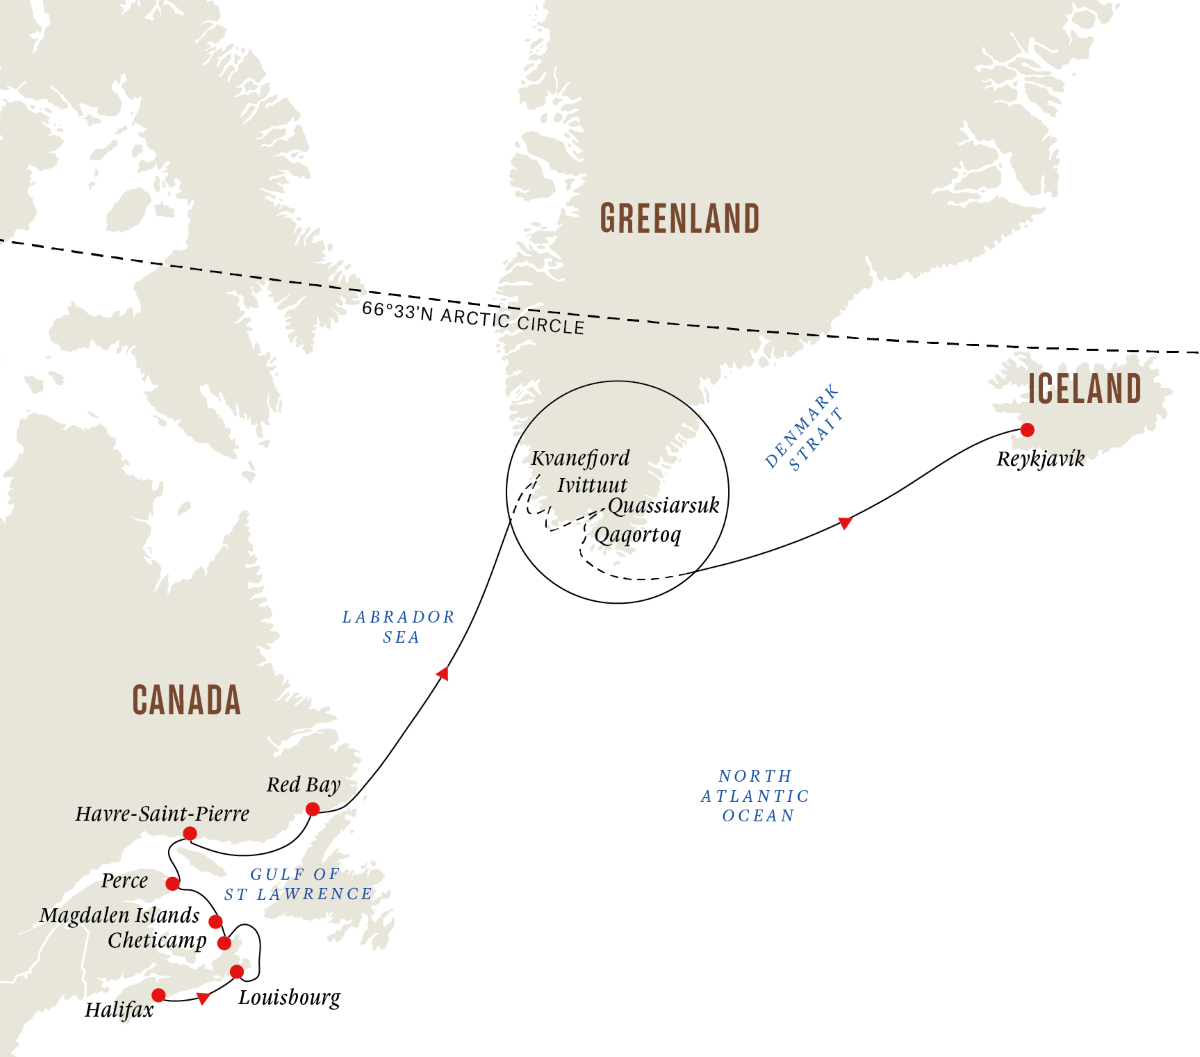 Atlantic Canada and Greenland - Expedition of History, Culture and Nature (Itinerary 1)